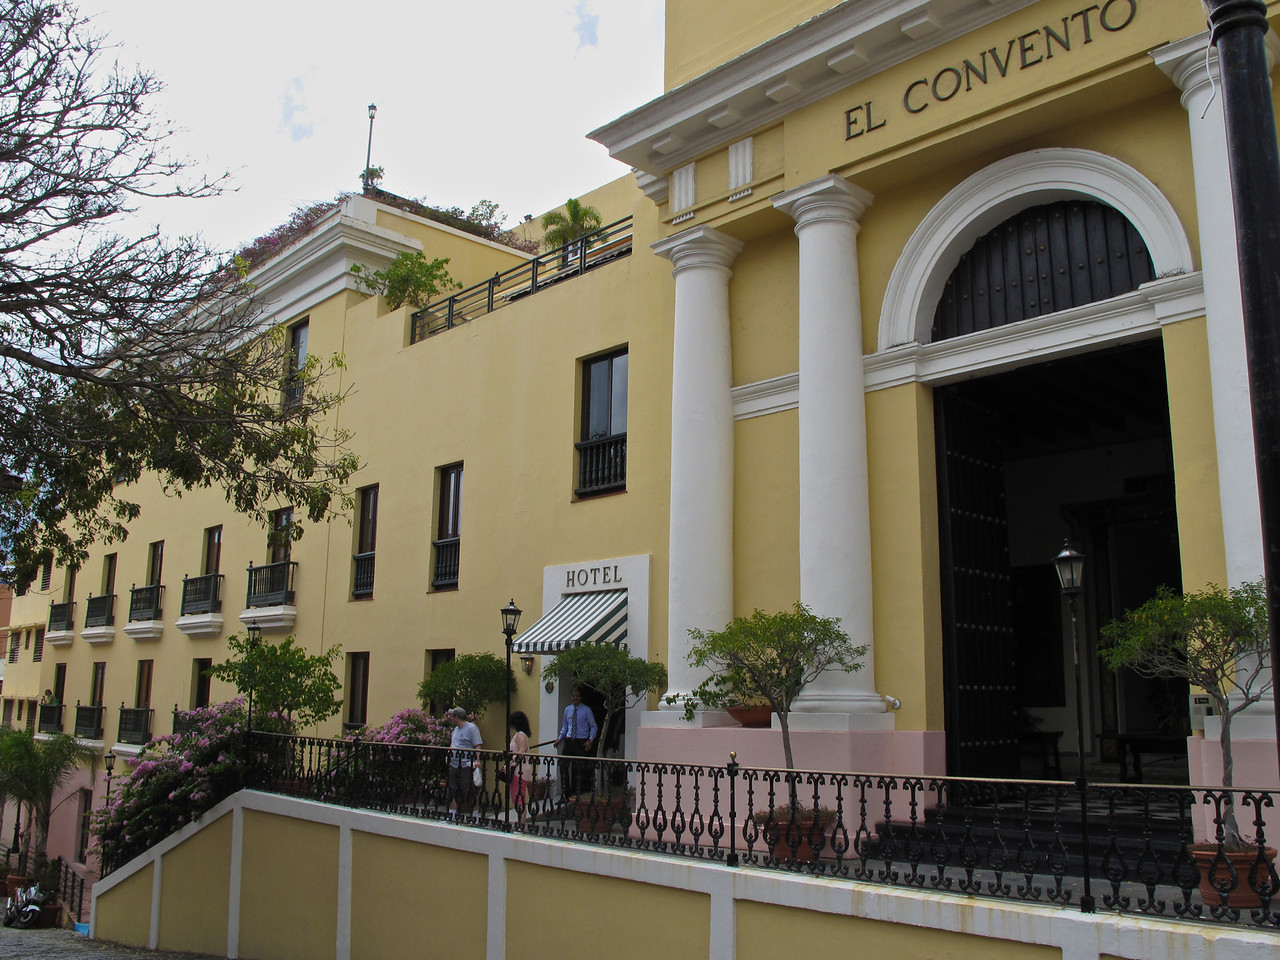 Hotel El Convento has its origins as a Carmelite convent 356 years ago.  In <br /> 1646 Construction began on the Carmelite convent, through a petition by King Phillip IV of Spain.  In <br /> 1651, the convent was inaugurated as the Monastery of Our Lady Carmen of San José -- and was situated across the street from San Juan Cathedral, the Western Hemisphere's oldest cathedral.